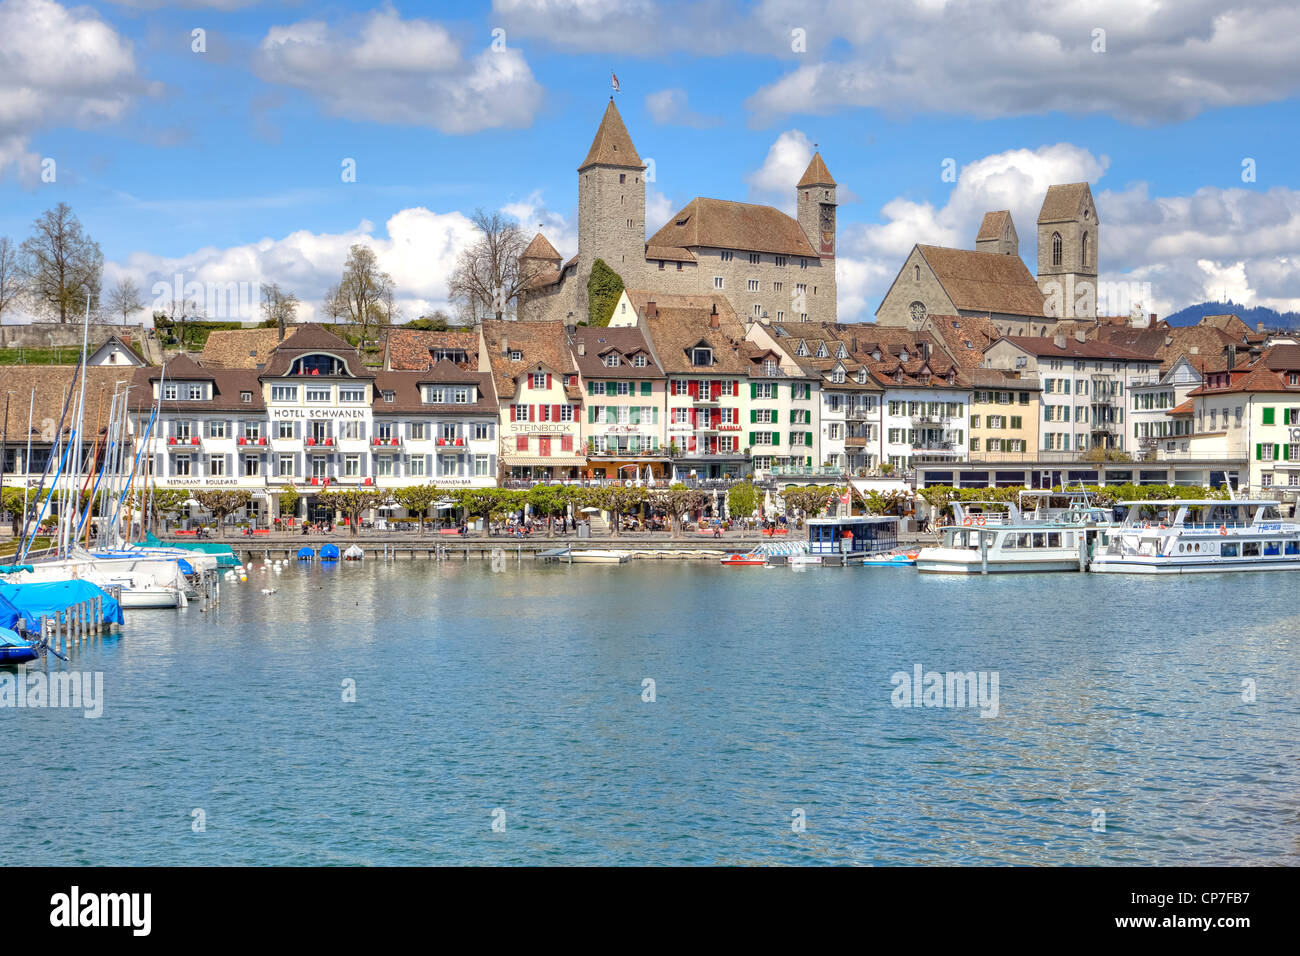 Castle of Rapperswil, Rapperswil-Jona, St. Gallen, Switzerland - Stock Image